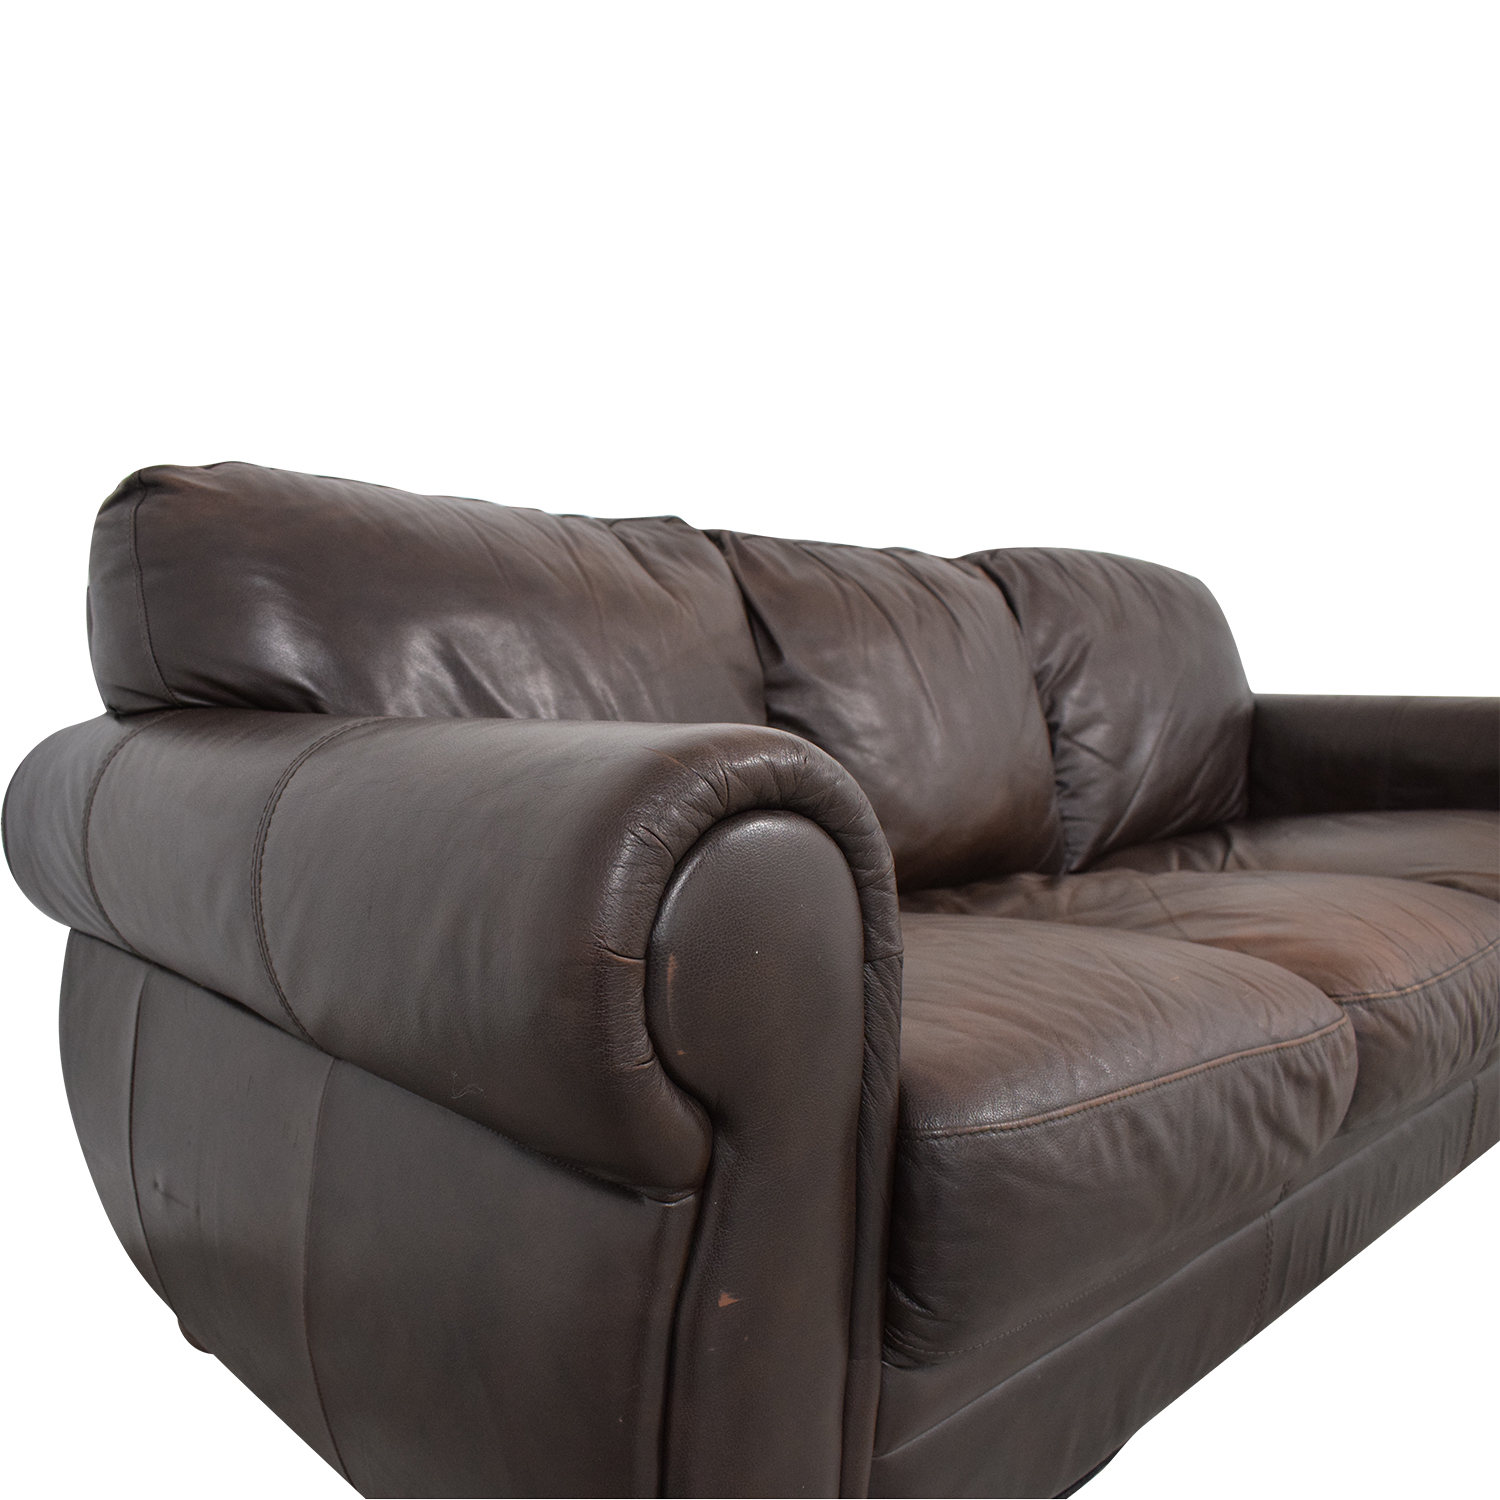 buy Chateau D'ax Marsala Leather Sofa Chateau d'Ax Sofas